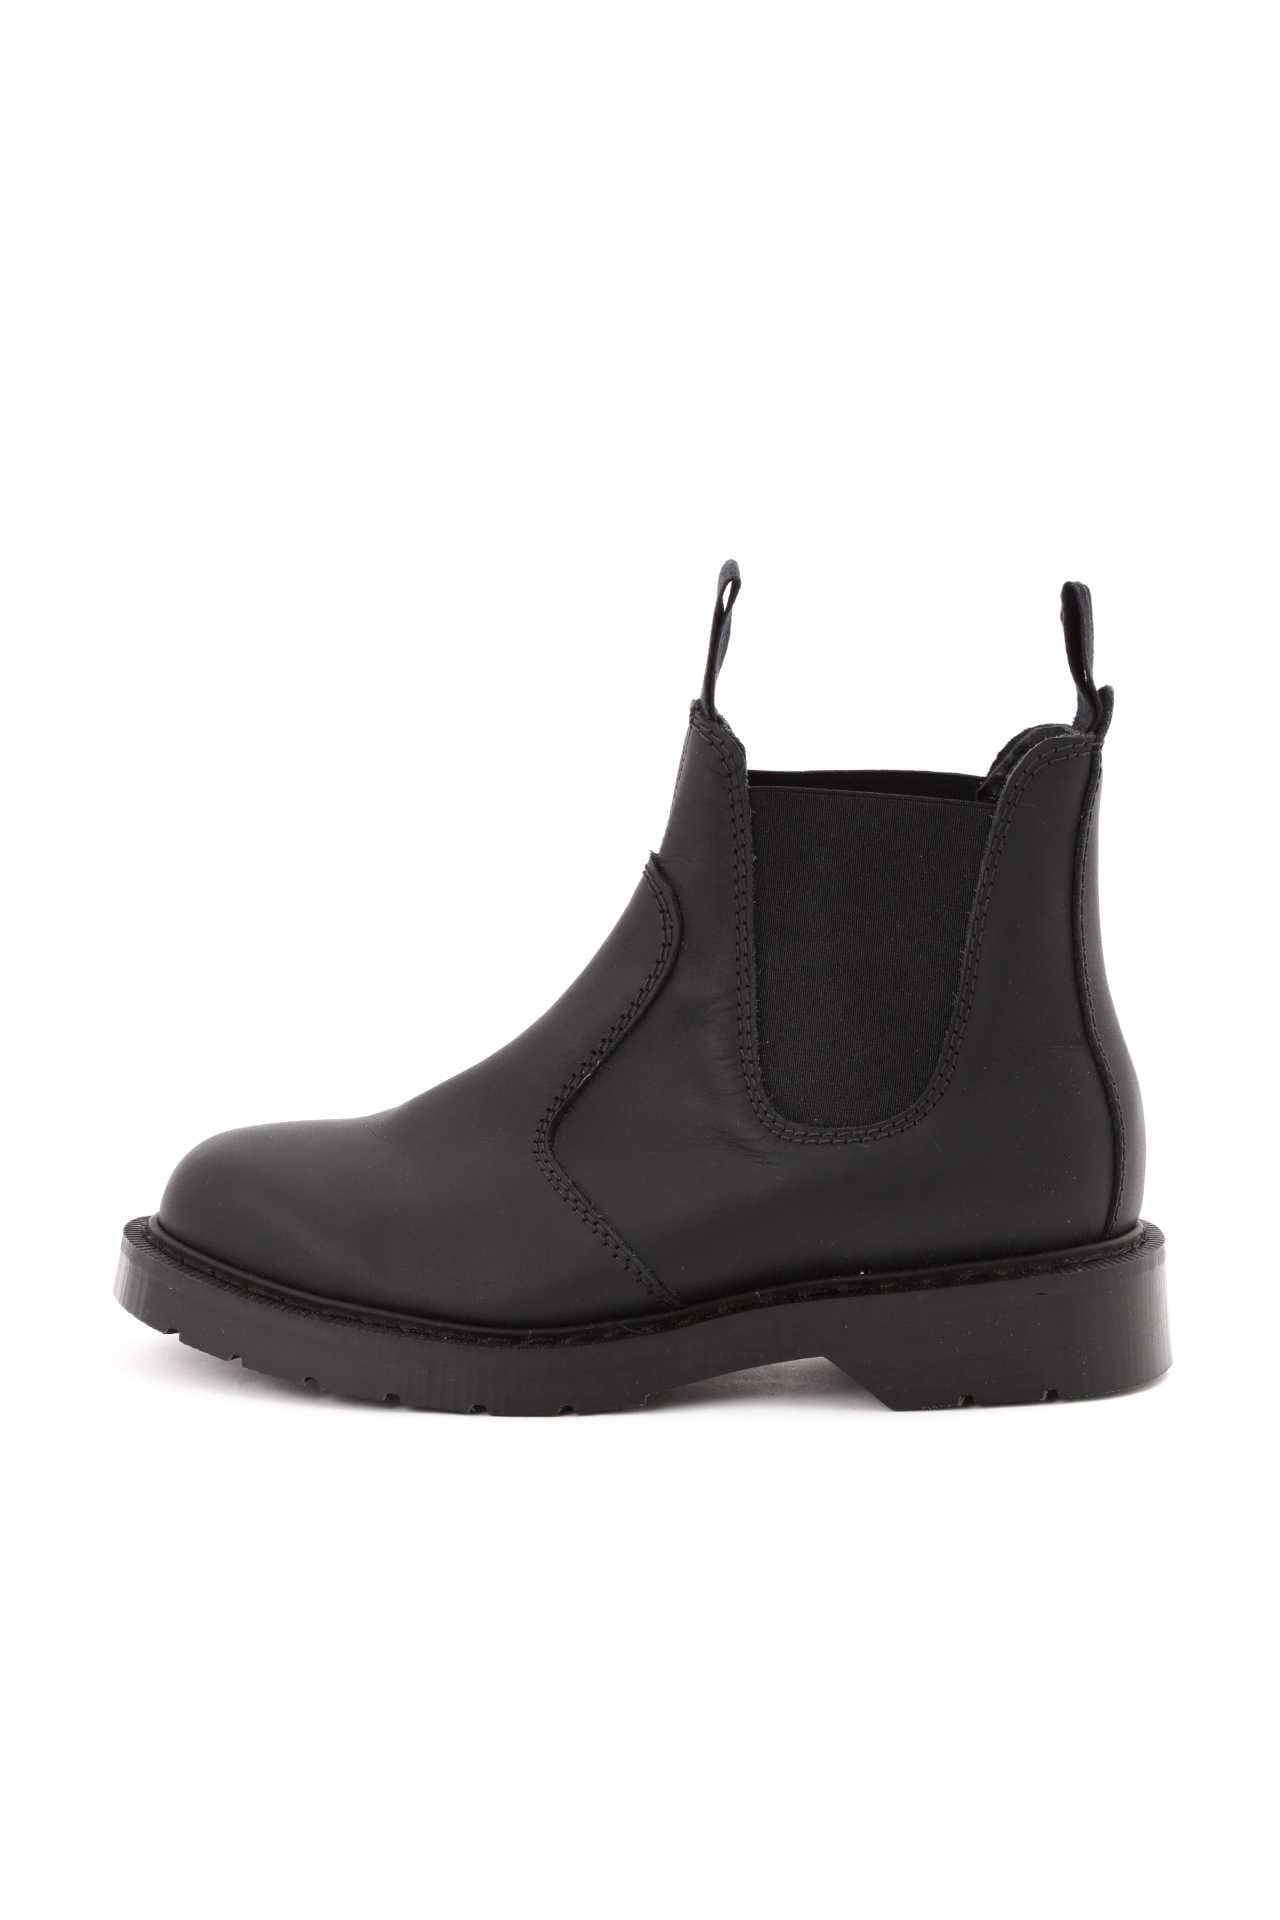 MHL CHELSEA BOOTS(MHL SHOP限定)2